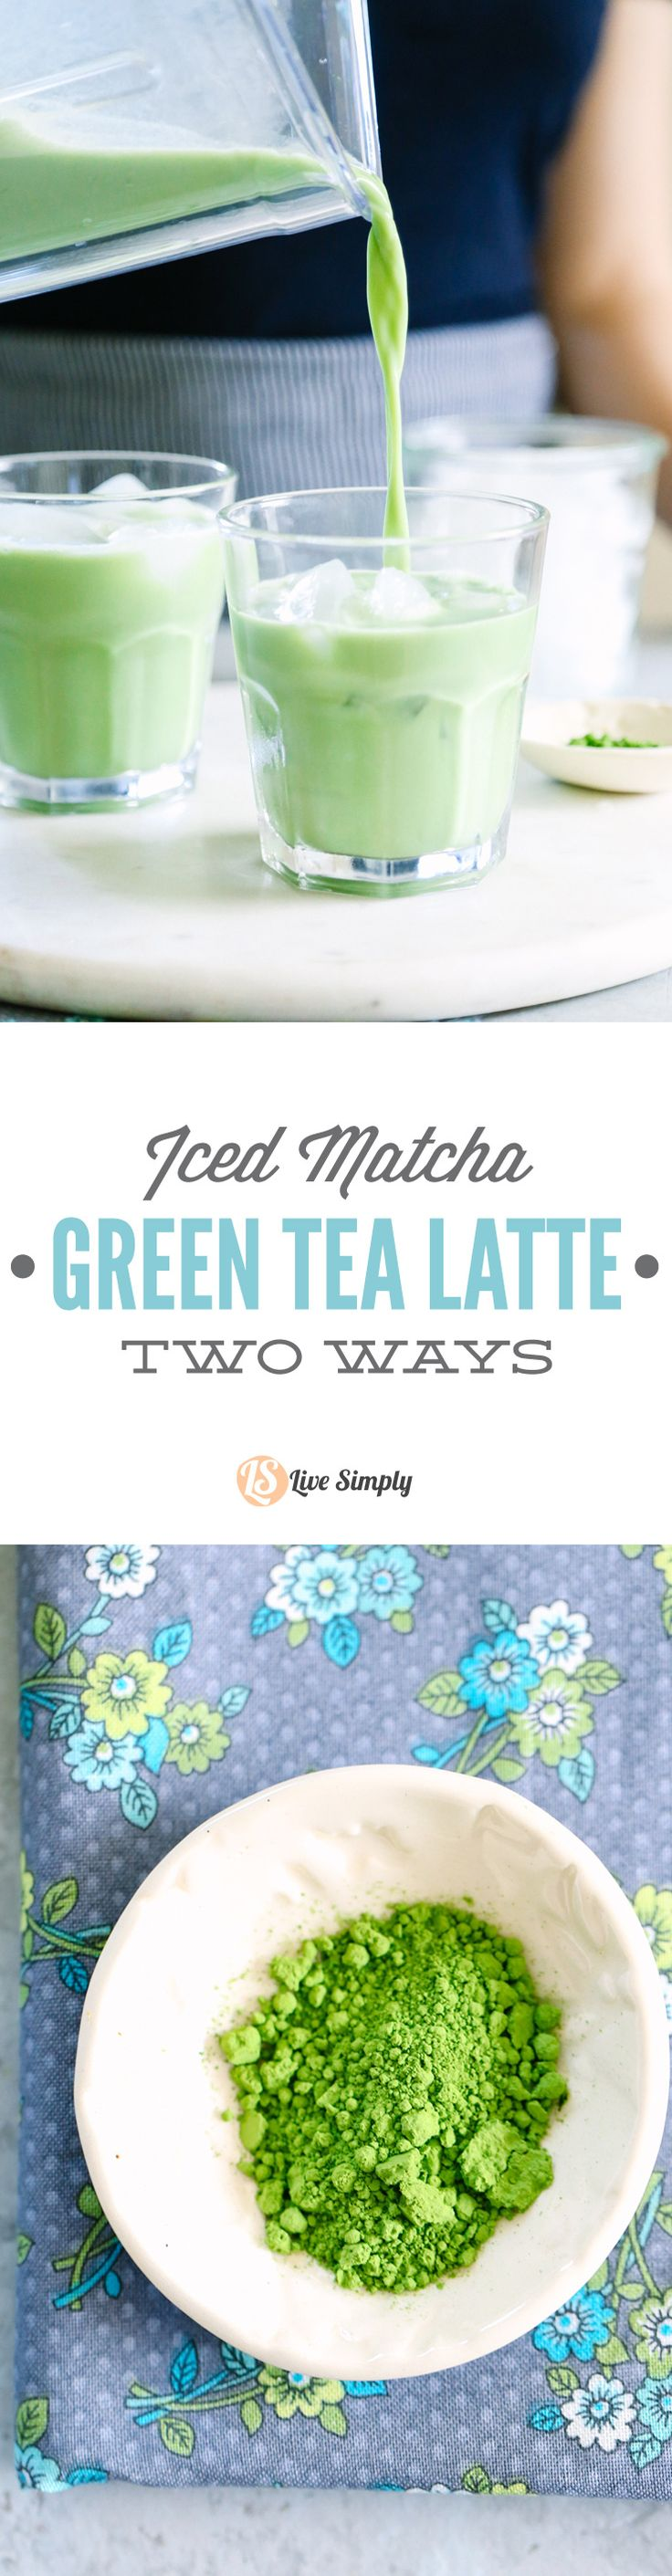 "Yum! I love match drinks, but I hate the coffee shop price. I can't believe how easy it is to make a matcha drink at home. This recipe includes two options: an iced ""latte"" (matcha milk) or a frappucino-style drink."